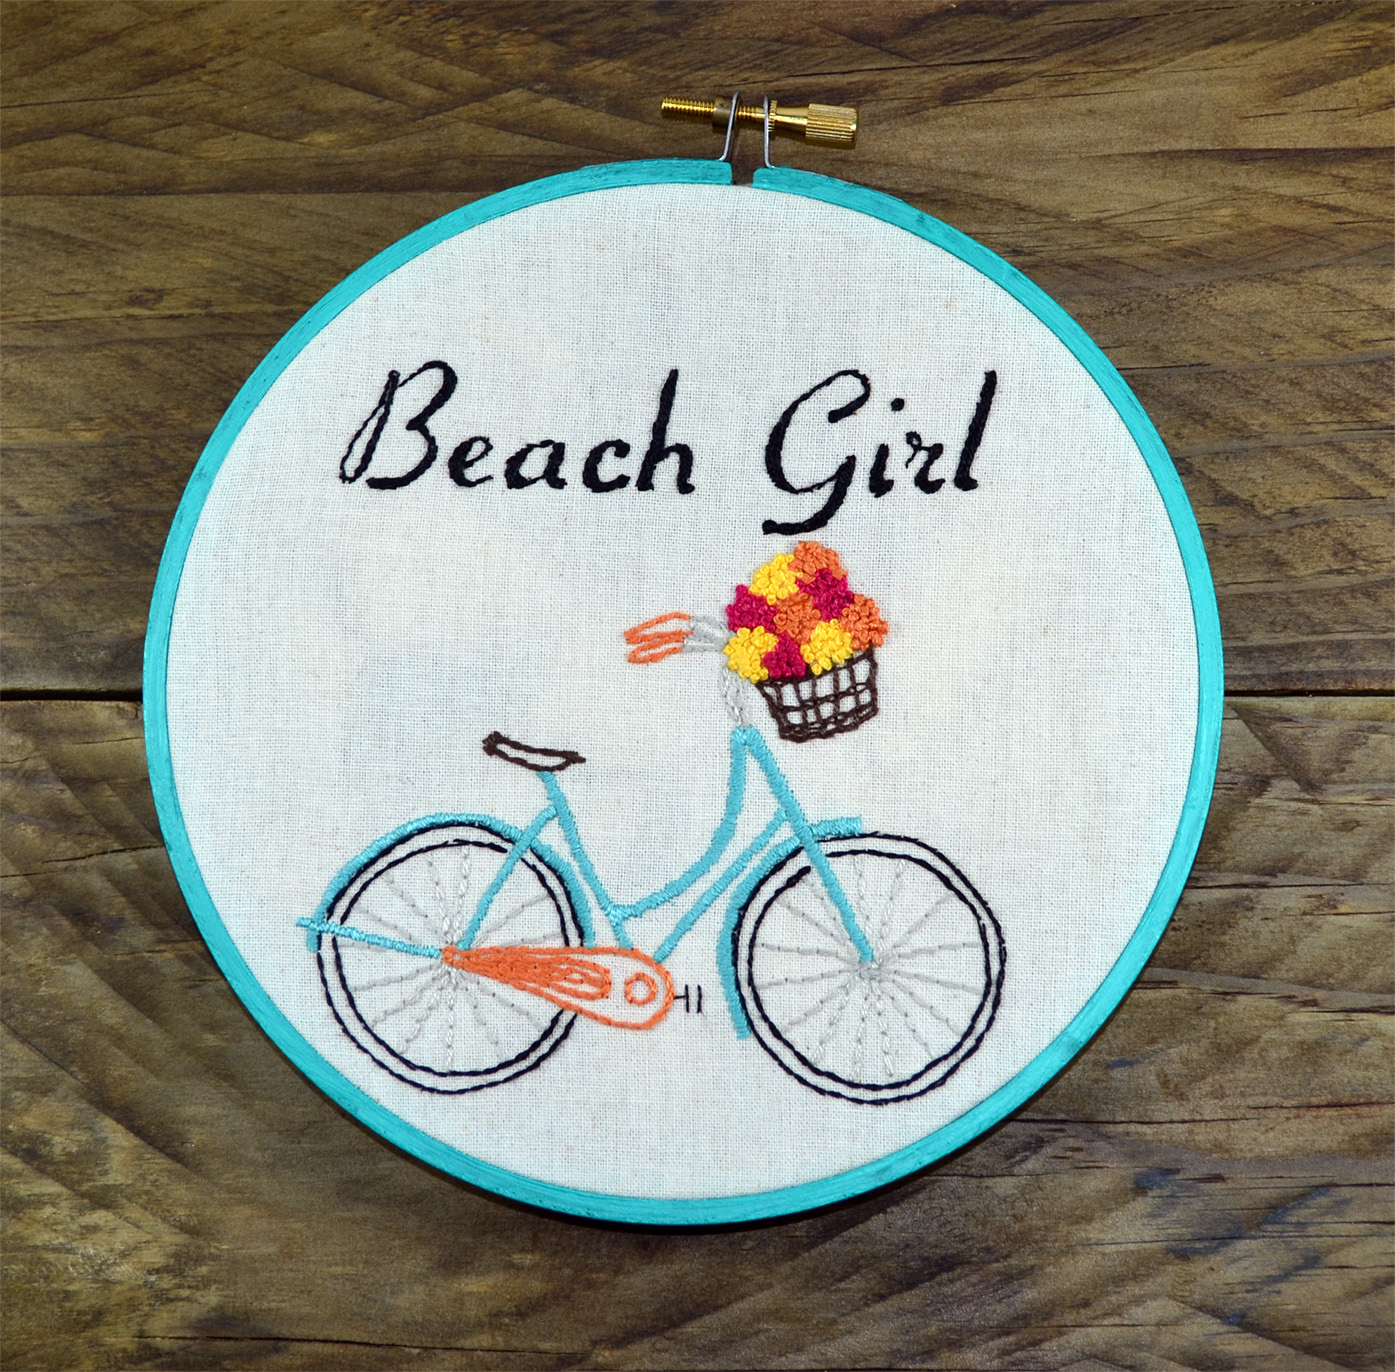 Ladies Beach Cruiser Bike, Turquoise retro bicycle with pastel flowers in basket, Hand Embroidery PDF